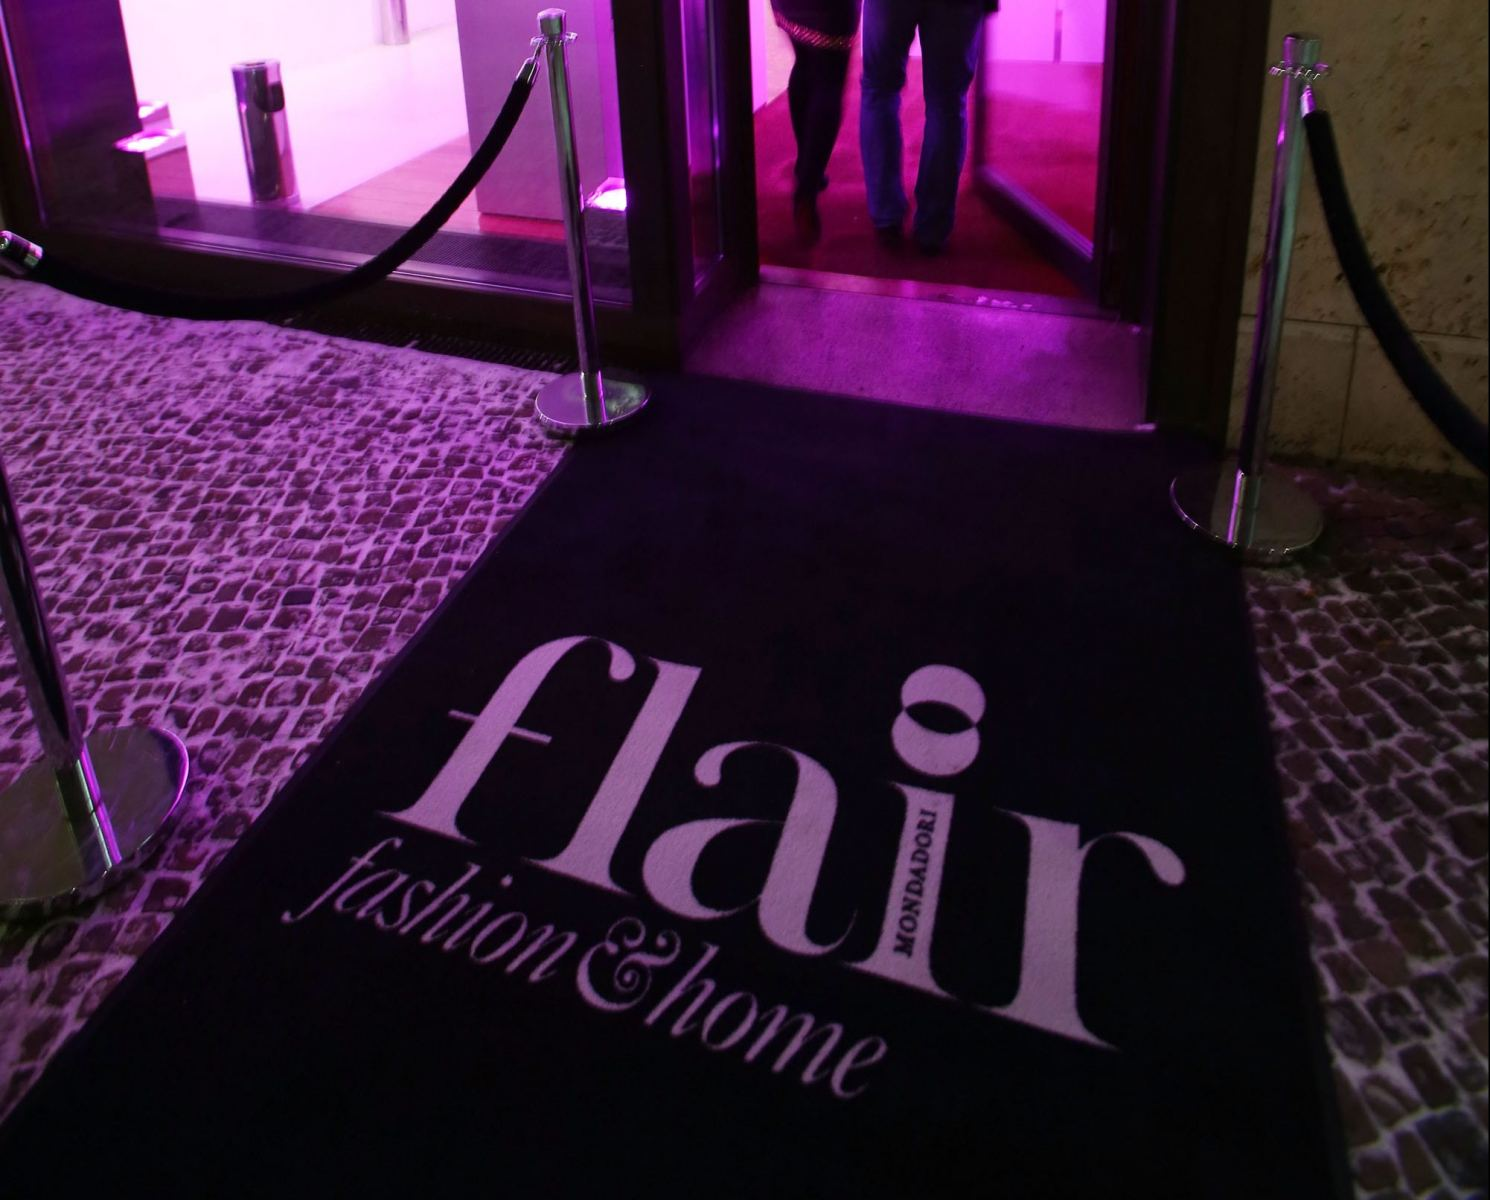 BERLIN, GERMANY - JANUARY 15:  A general view at the Flair Magazine Party at Pariser Platz 4  on January 15, 2013 in Berlin, Germany.  (Photo by Andreas Rentz/Getty Images)